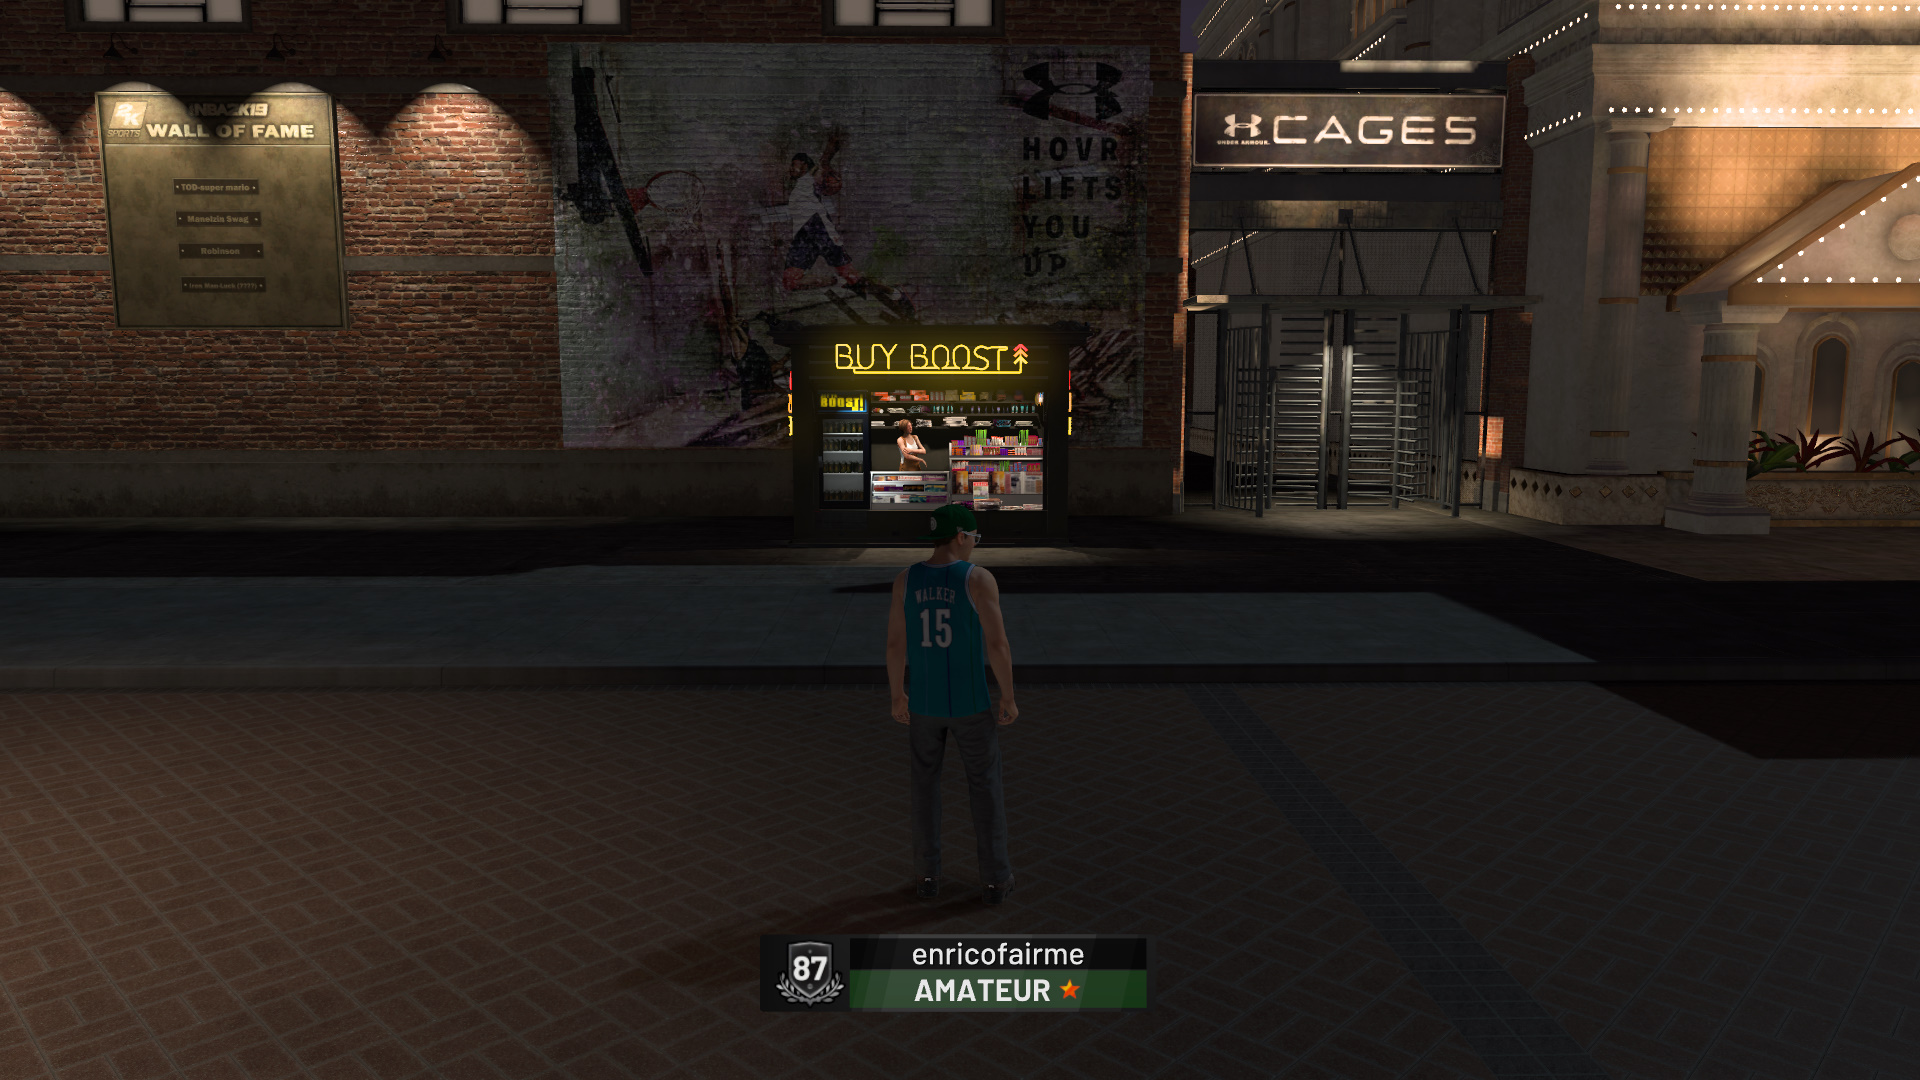 Where to Buy MyPLAYER Boosts in NBA 2K19